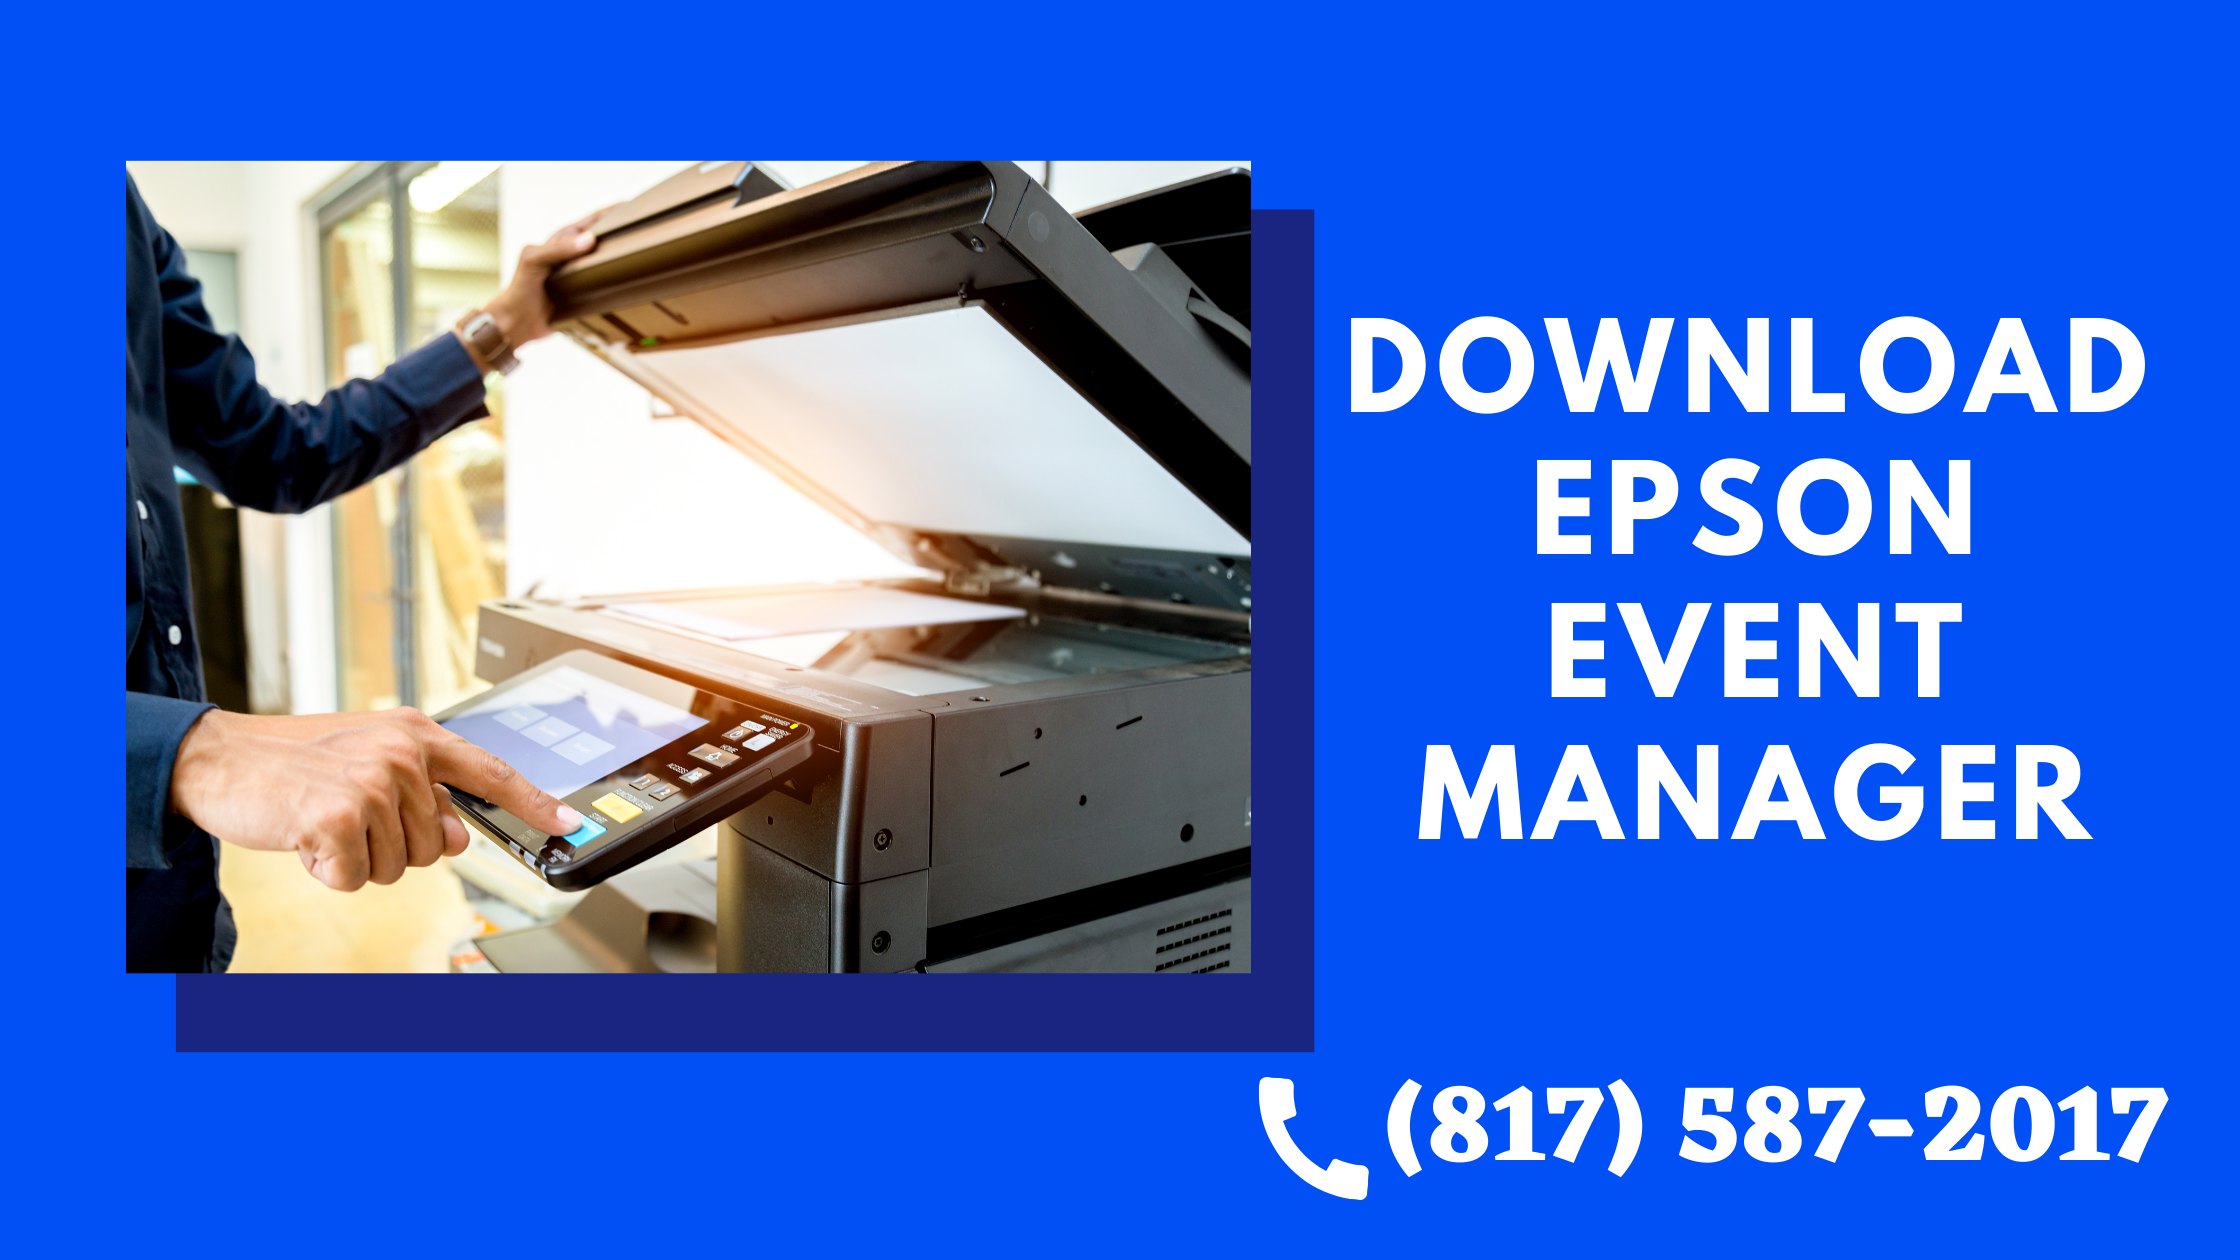 Epson Event Manager Software Downloads 817 587 2017 For Mac Windows